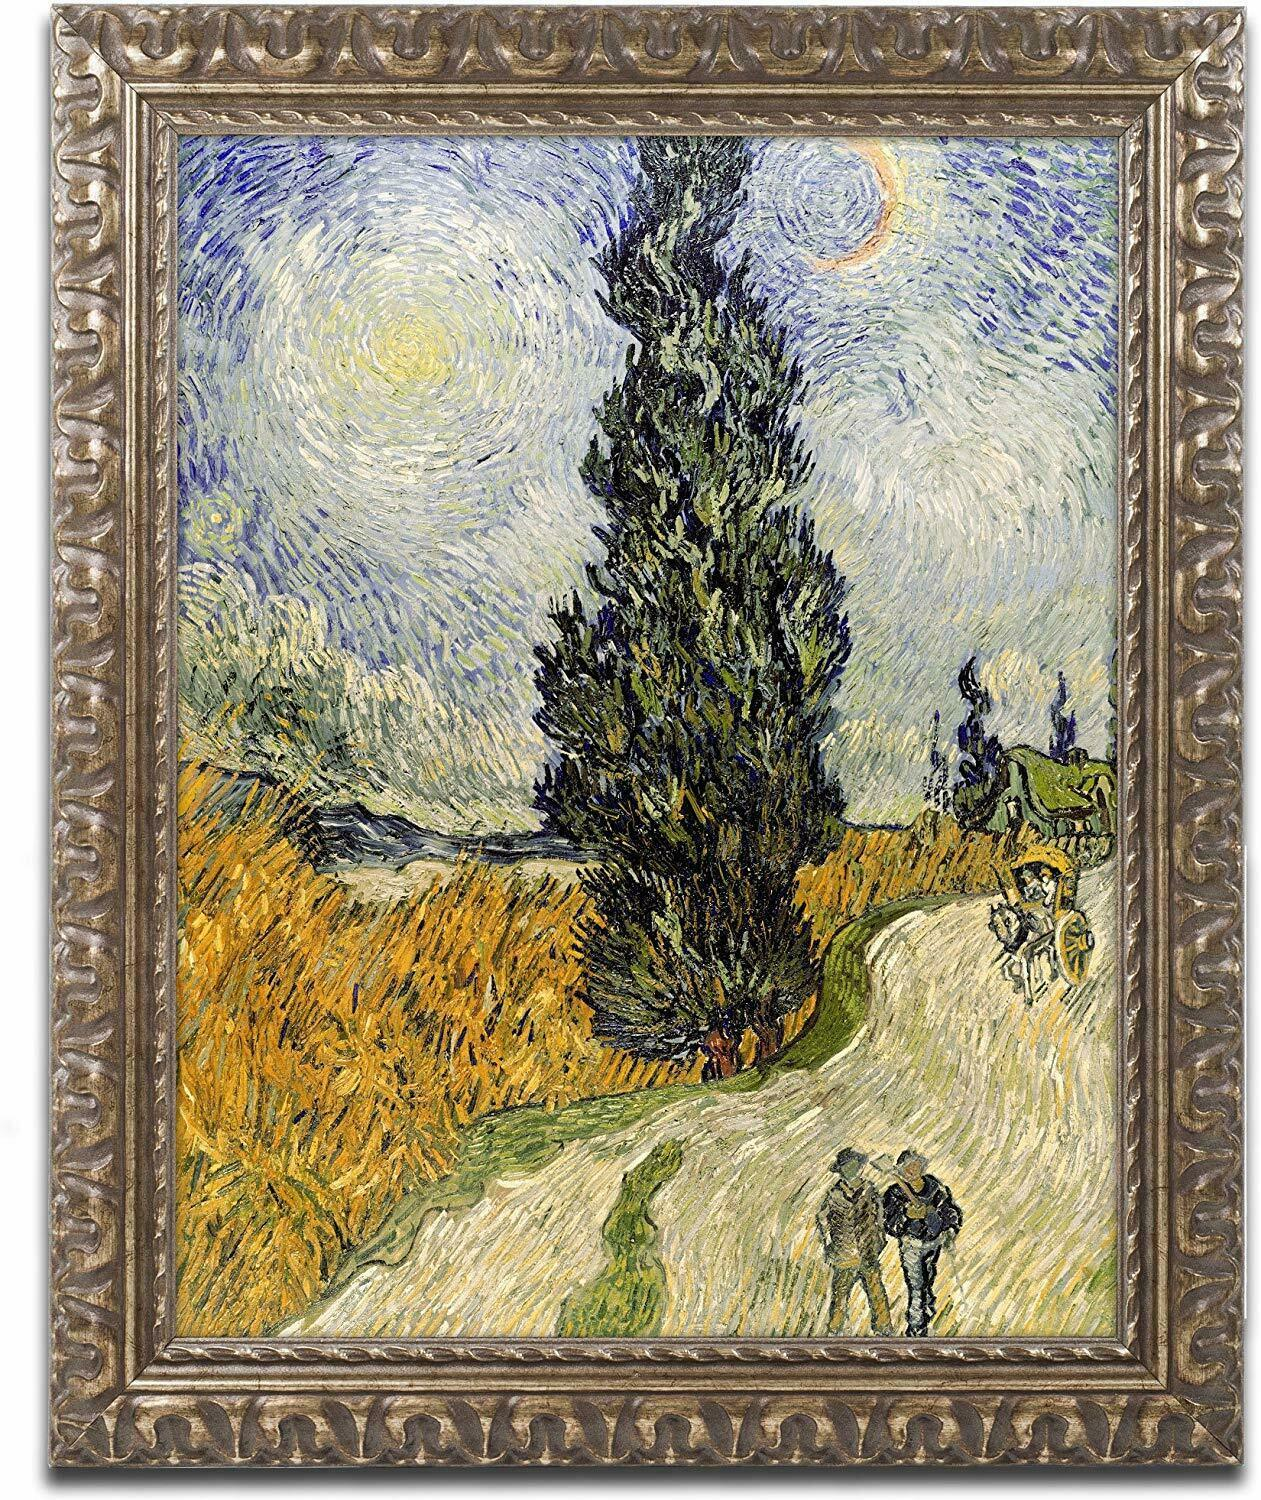 Primary image for Road with Cypresses Canvas Art, Vincent van Gogh, 11 X 14 Inch Gold Ornate Frame